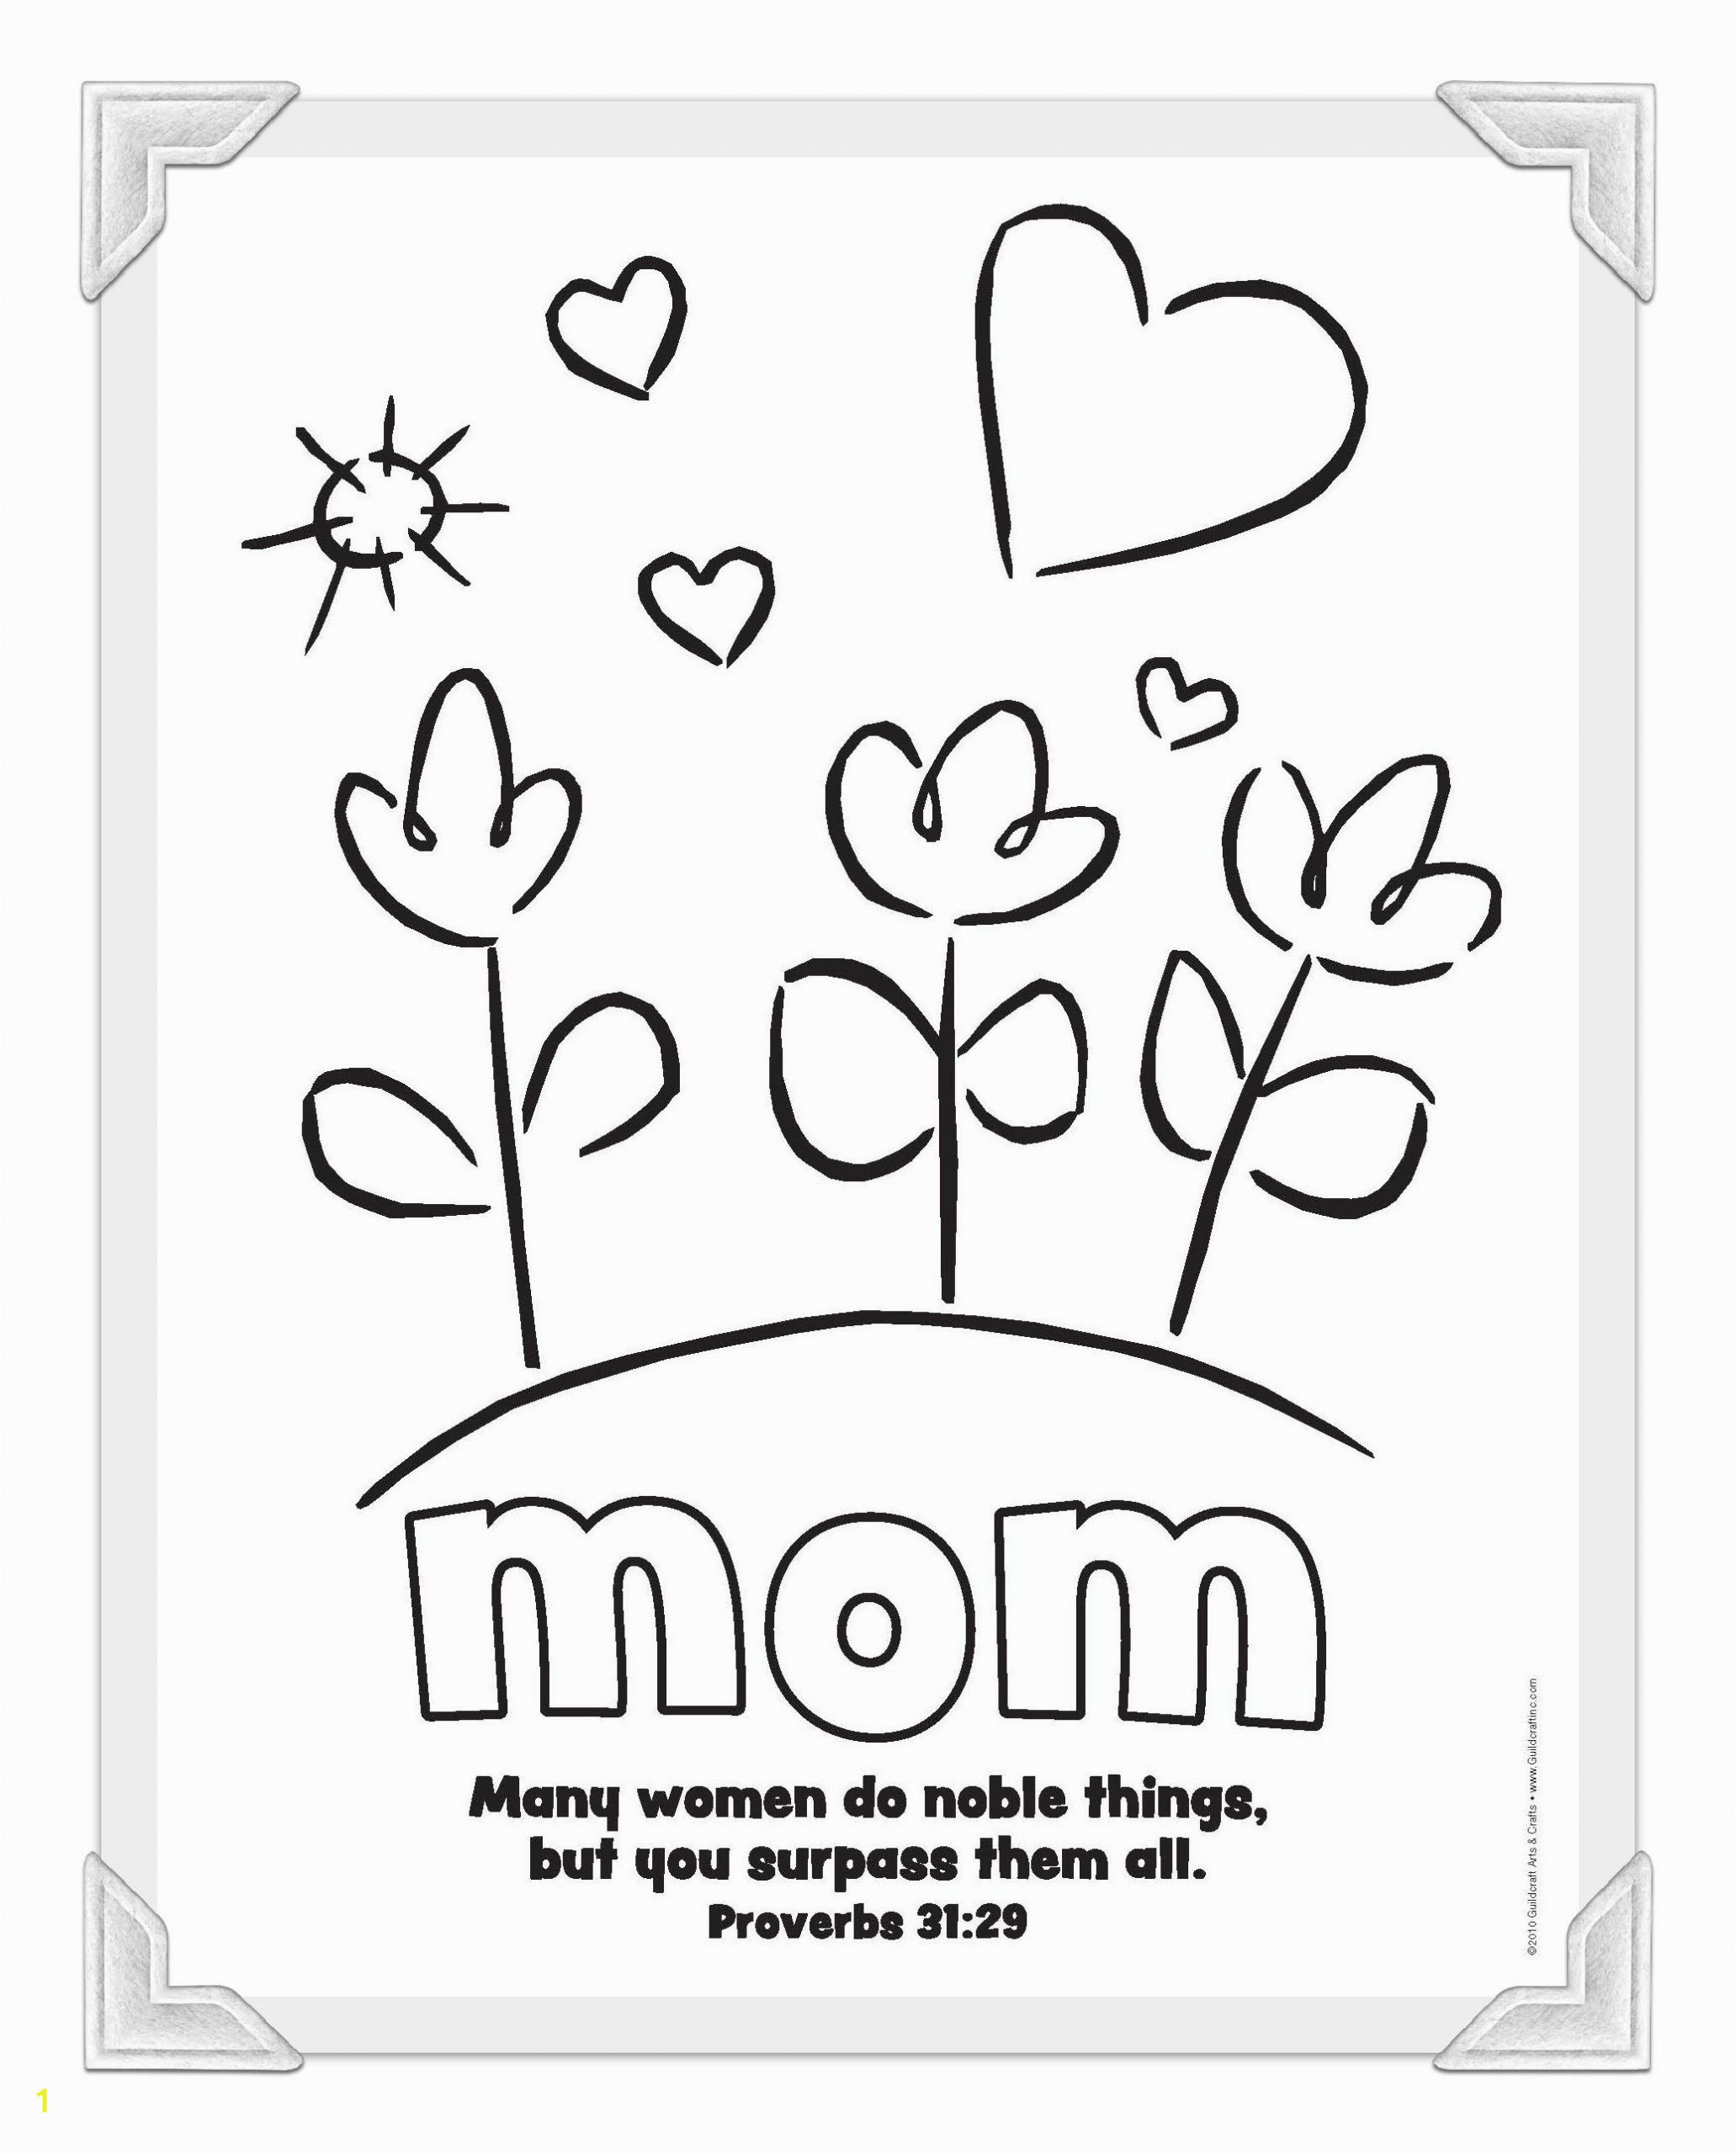 Mothers Day Coloring Page for Sunday School Printable Mother S Day Coloring Pages